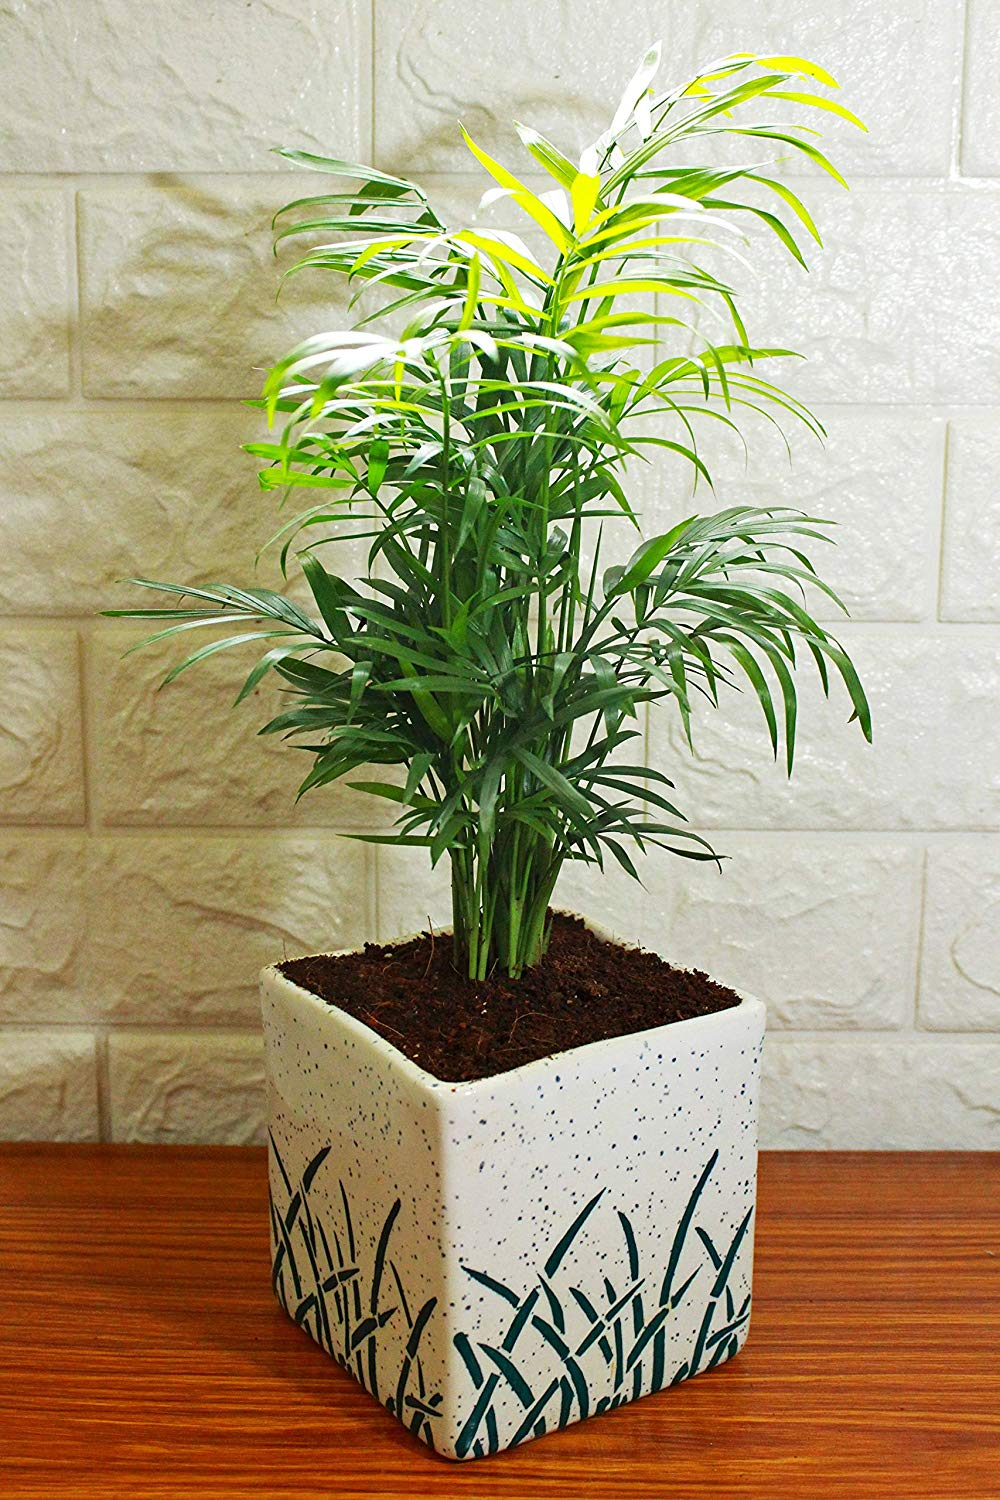 Air Purifying Good Luck Live Natural Plants in Exquisite Ceramic Pots. Best Indoor Plants online in India. Best green gifts for corporate or any occasions. Love plants as gifts. Low maintenance quality houseplants shipped all over India.